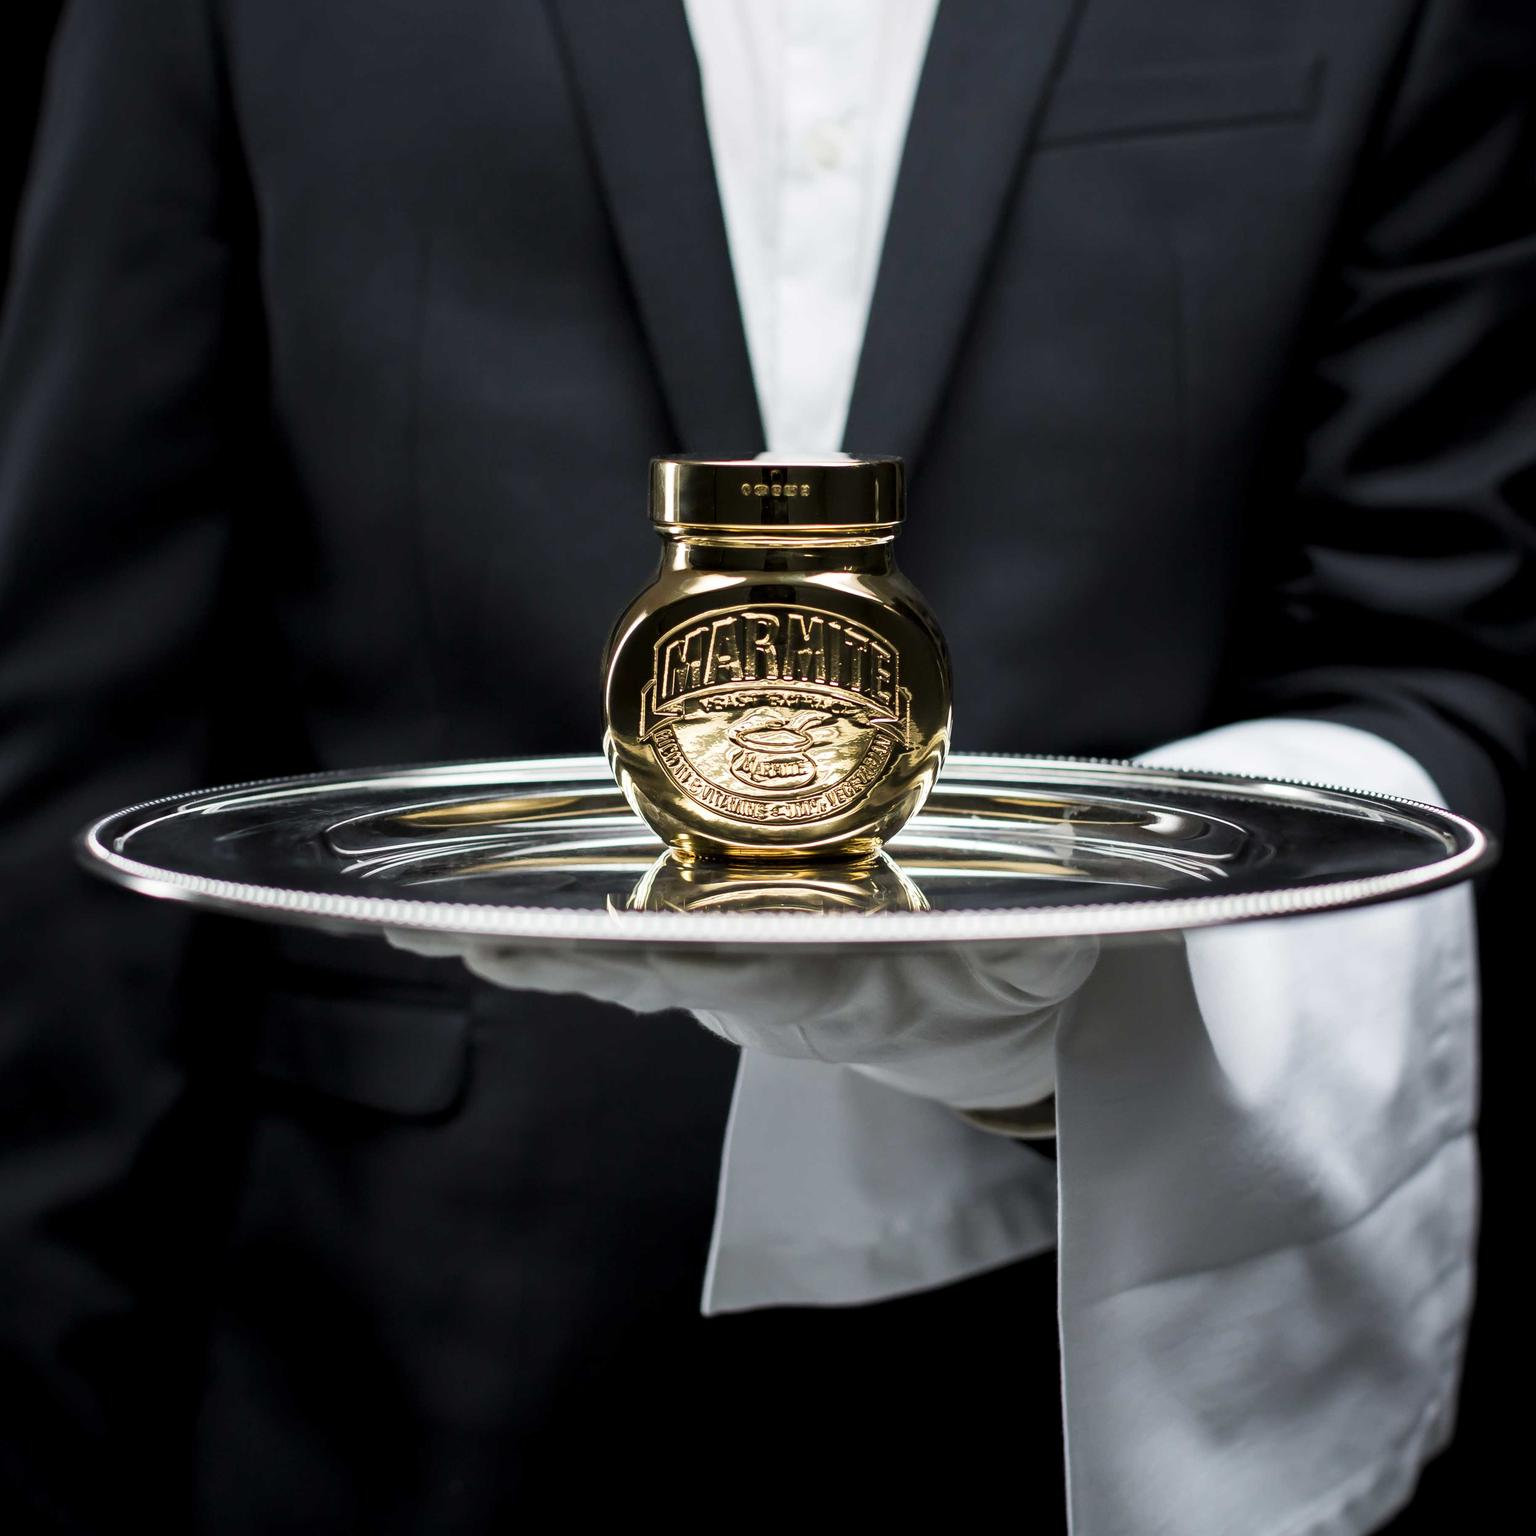 The Marmite Golden jars weighs 498 grs